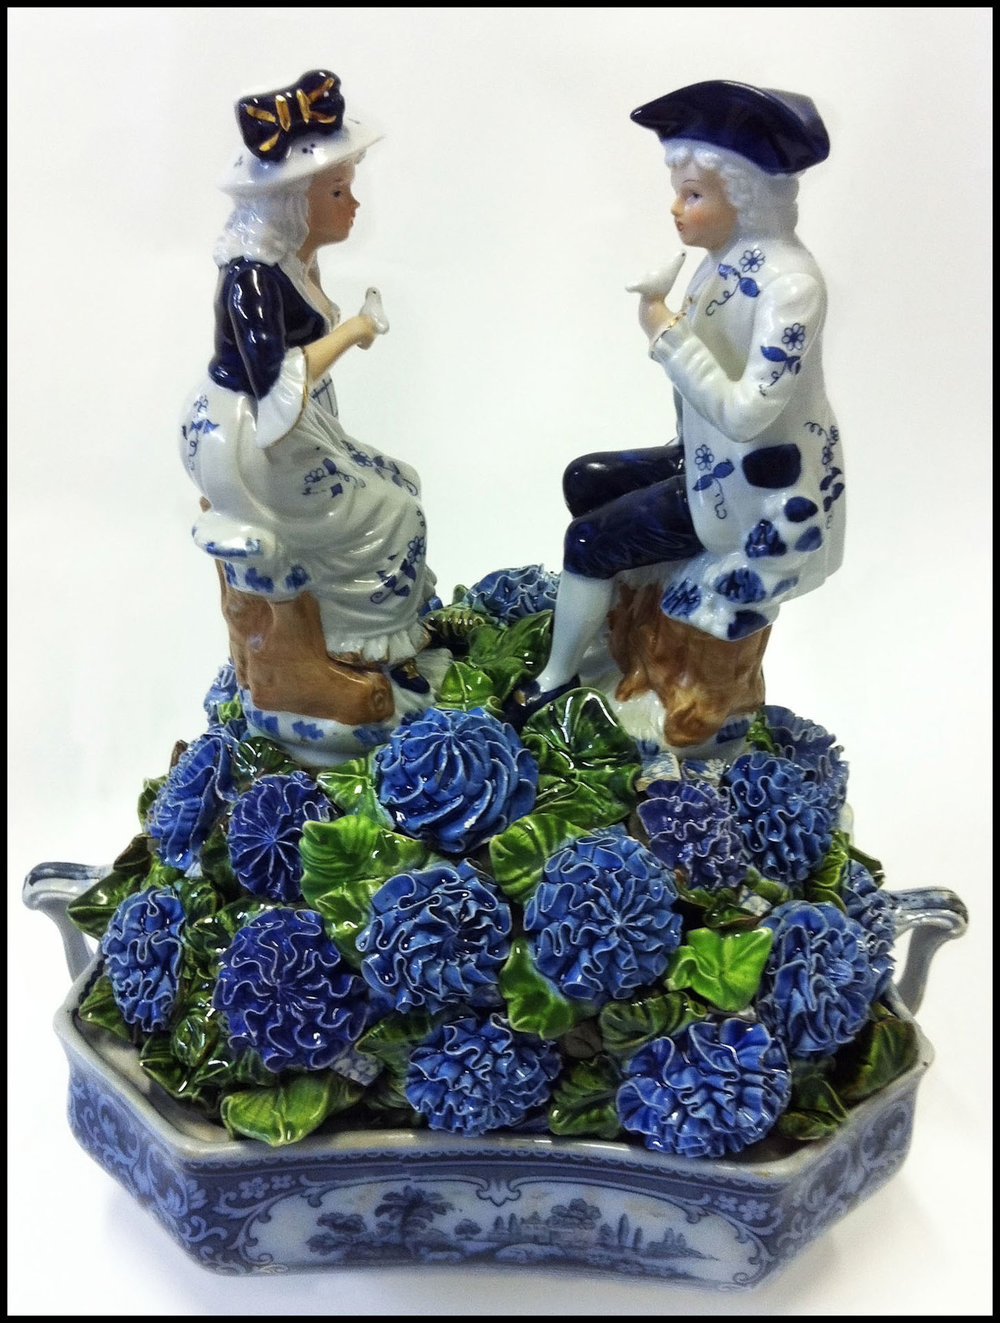 "BLUEBERRY HILL 13"" x 12"" x 8""   3D sculpture example  using heirloom blue and white china and figurines."